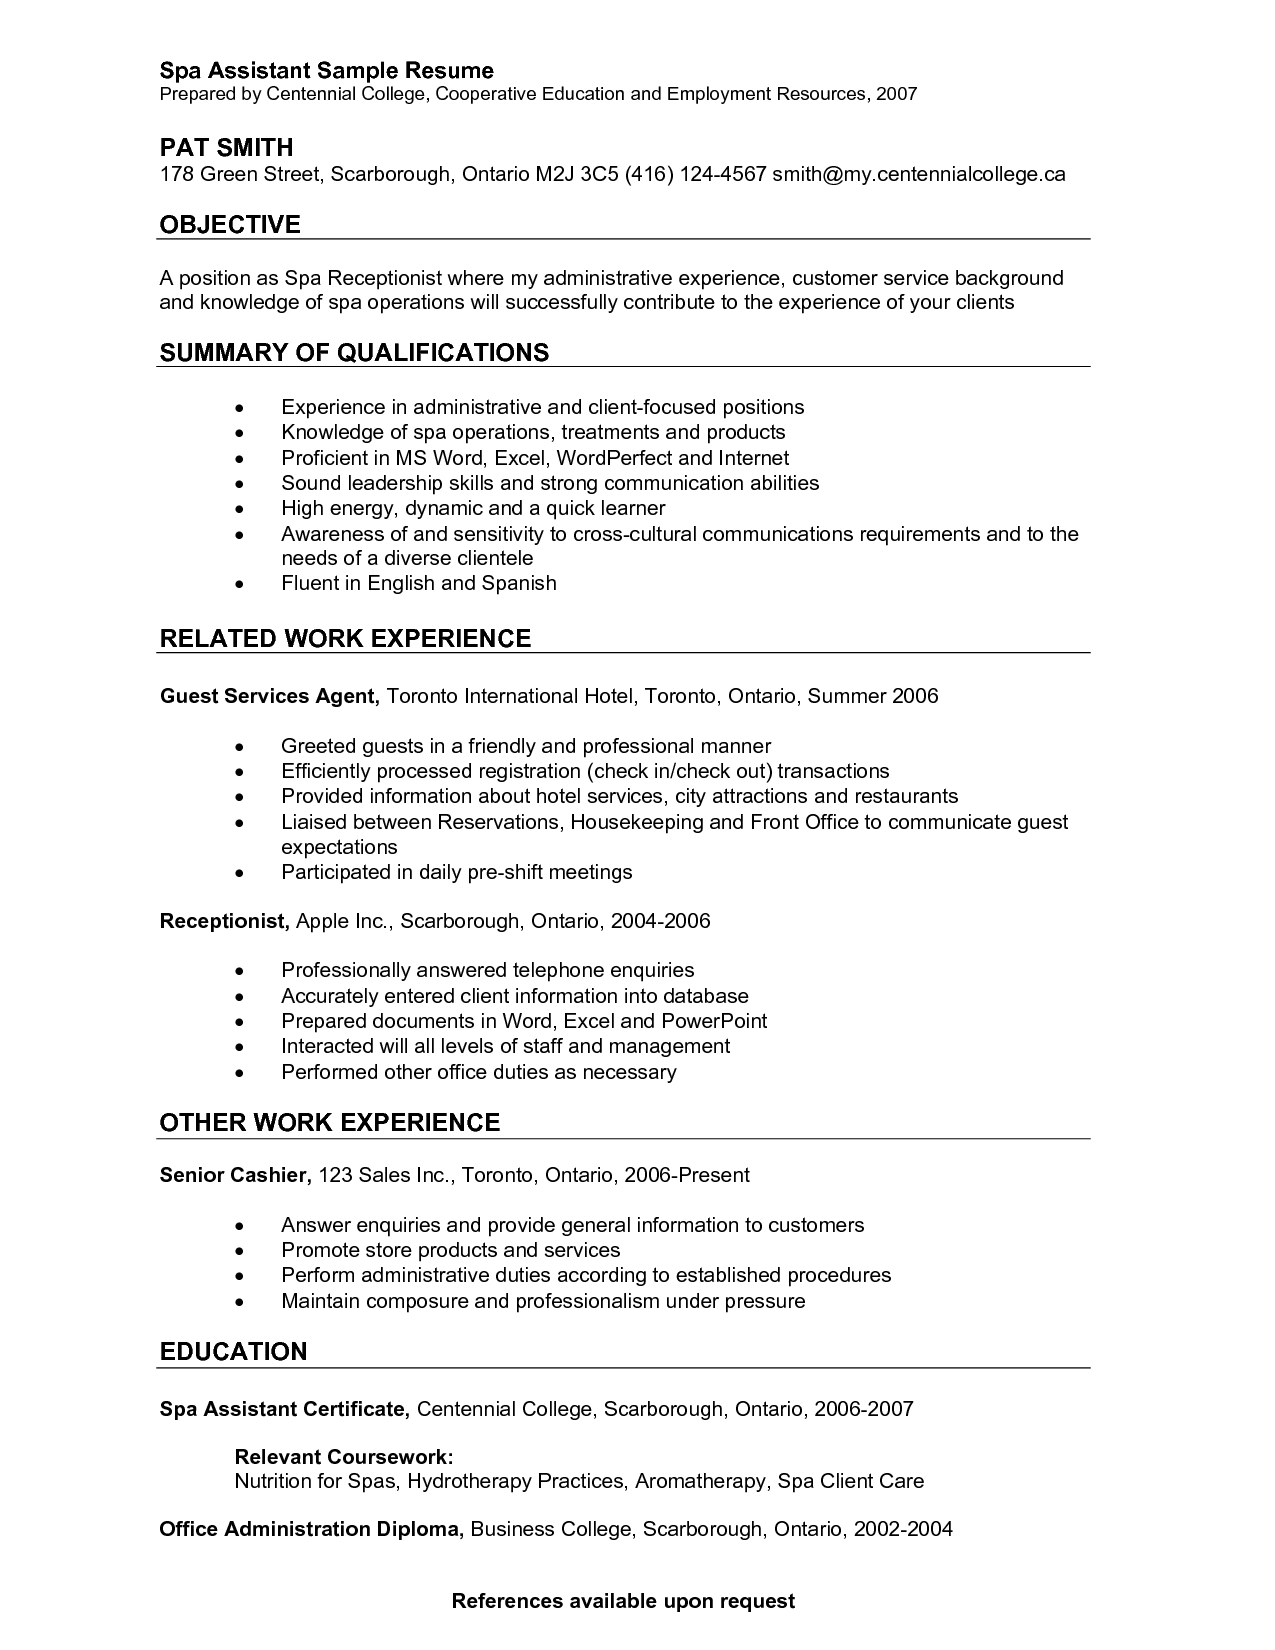 Medical Receptionist Resume Objective Samples Medical